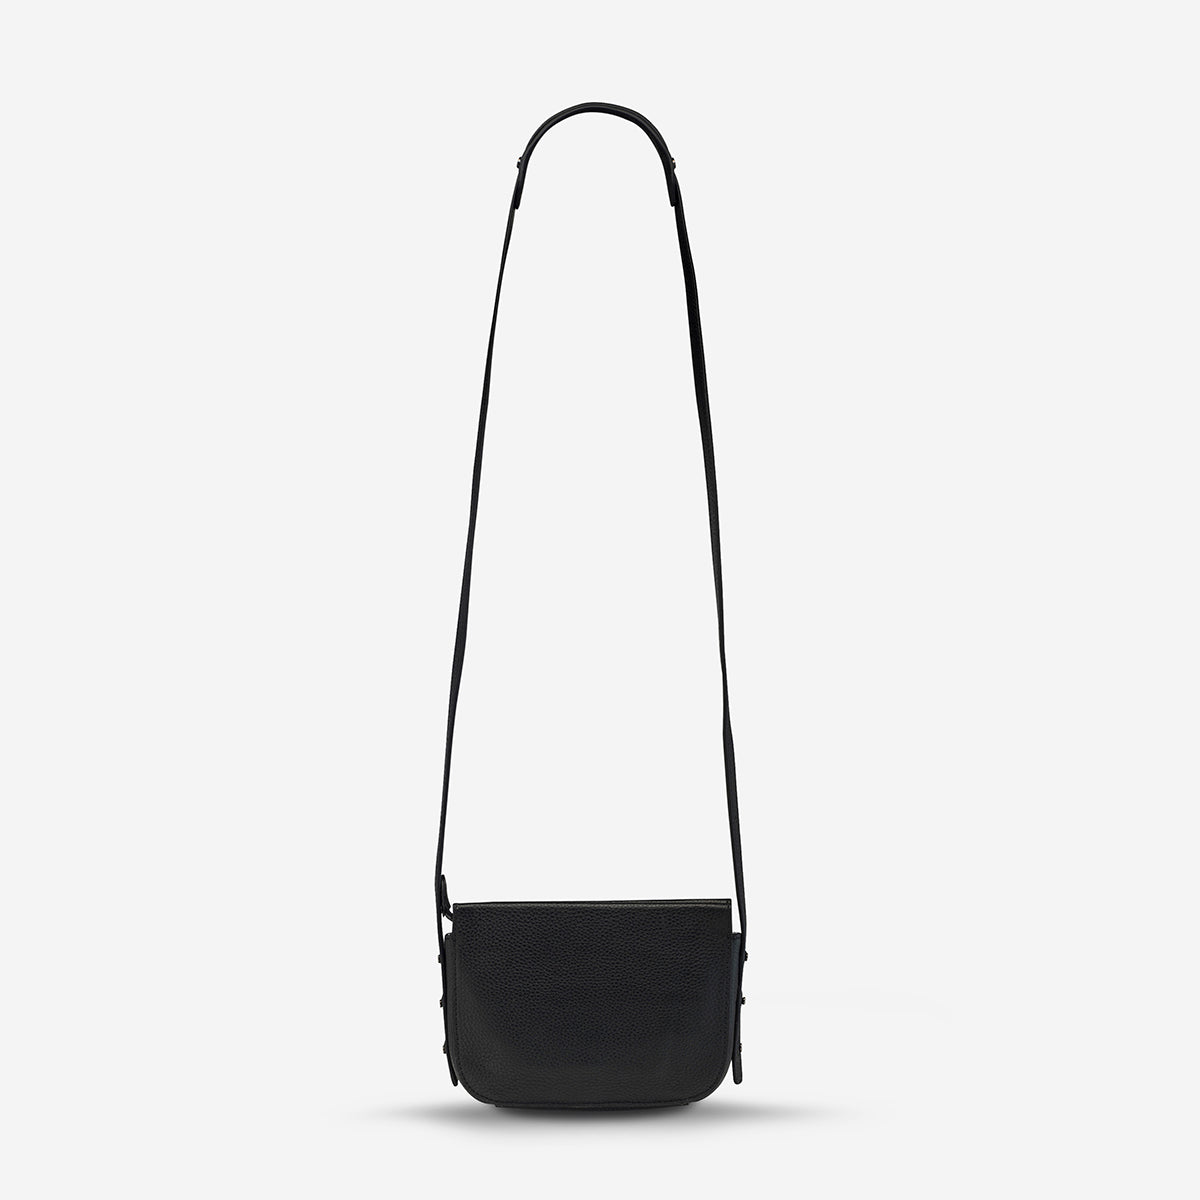 Status Anxiety In Her Command Women's Leather Crossbody Bag - Black